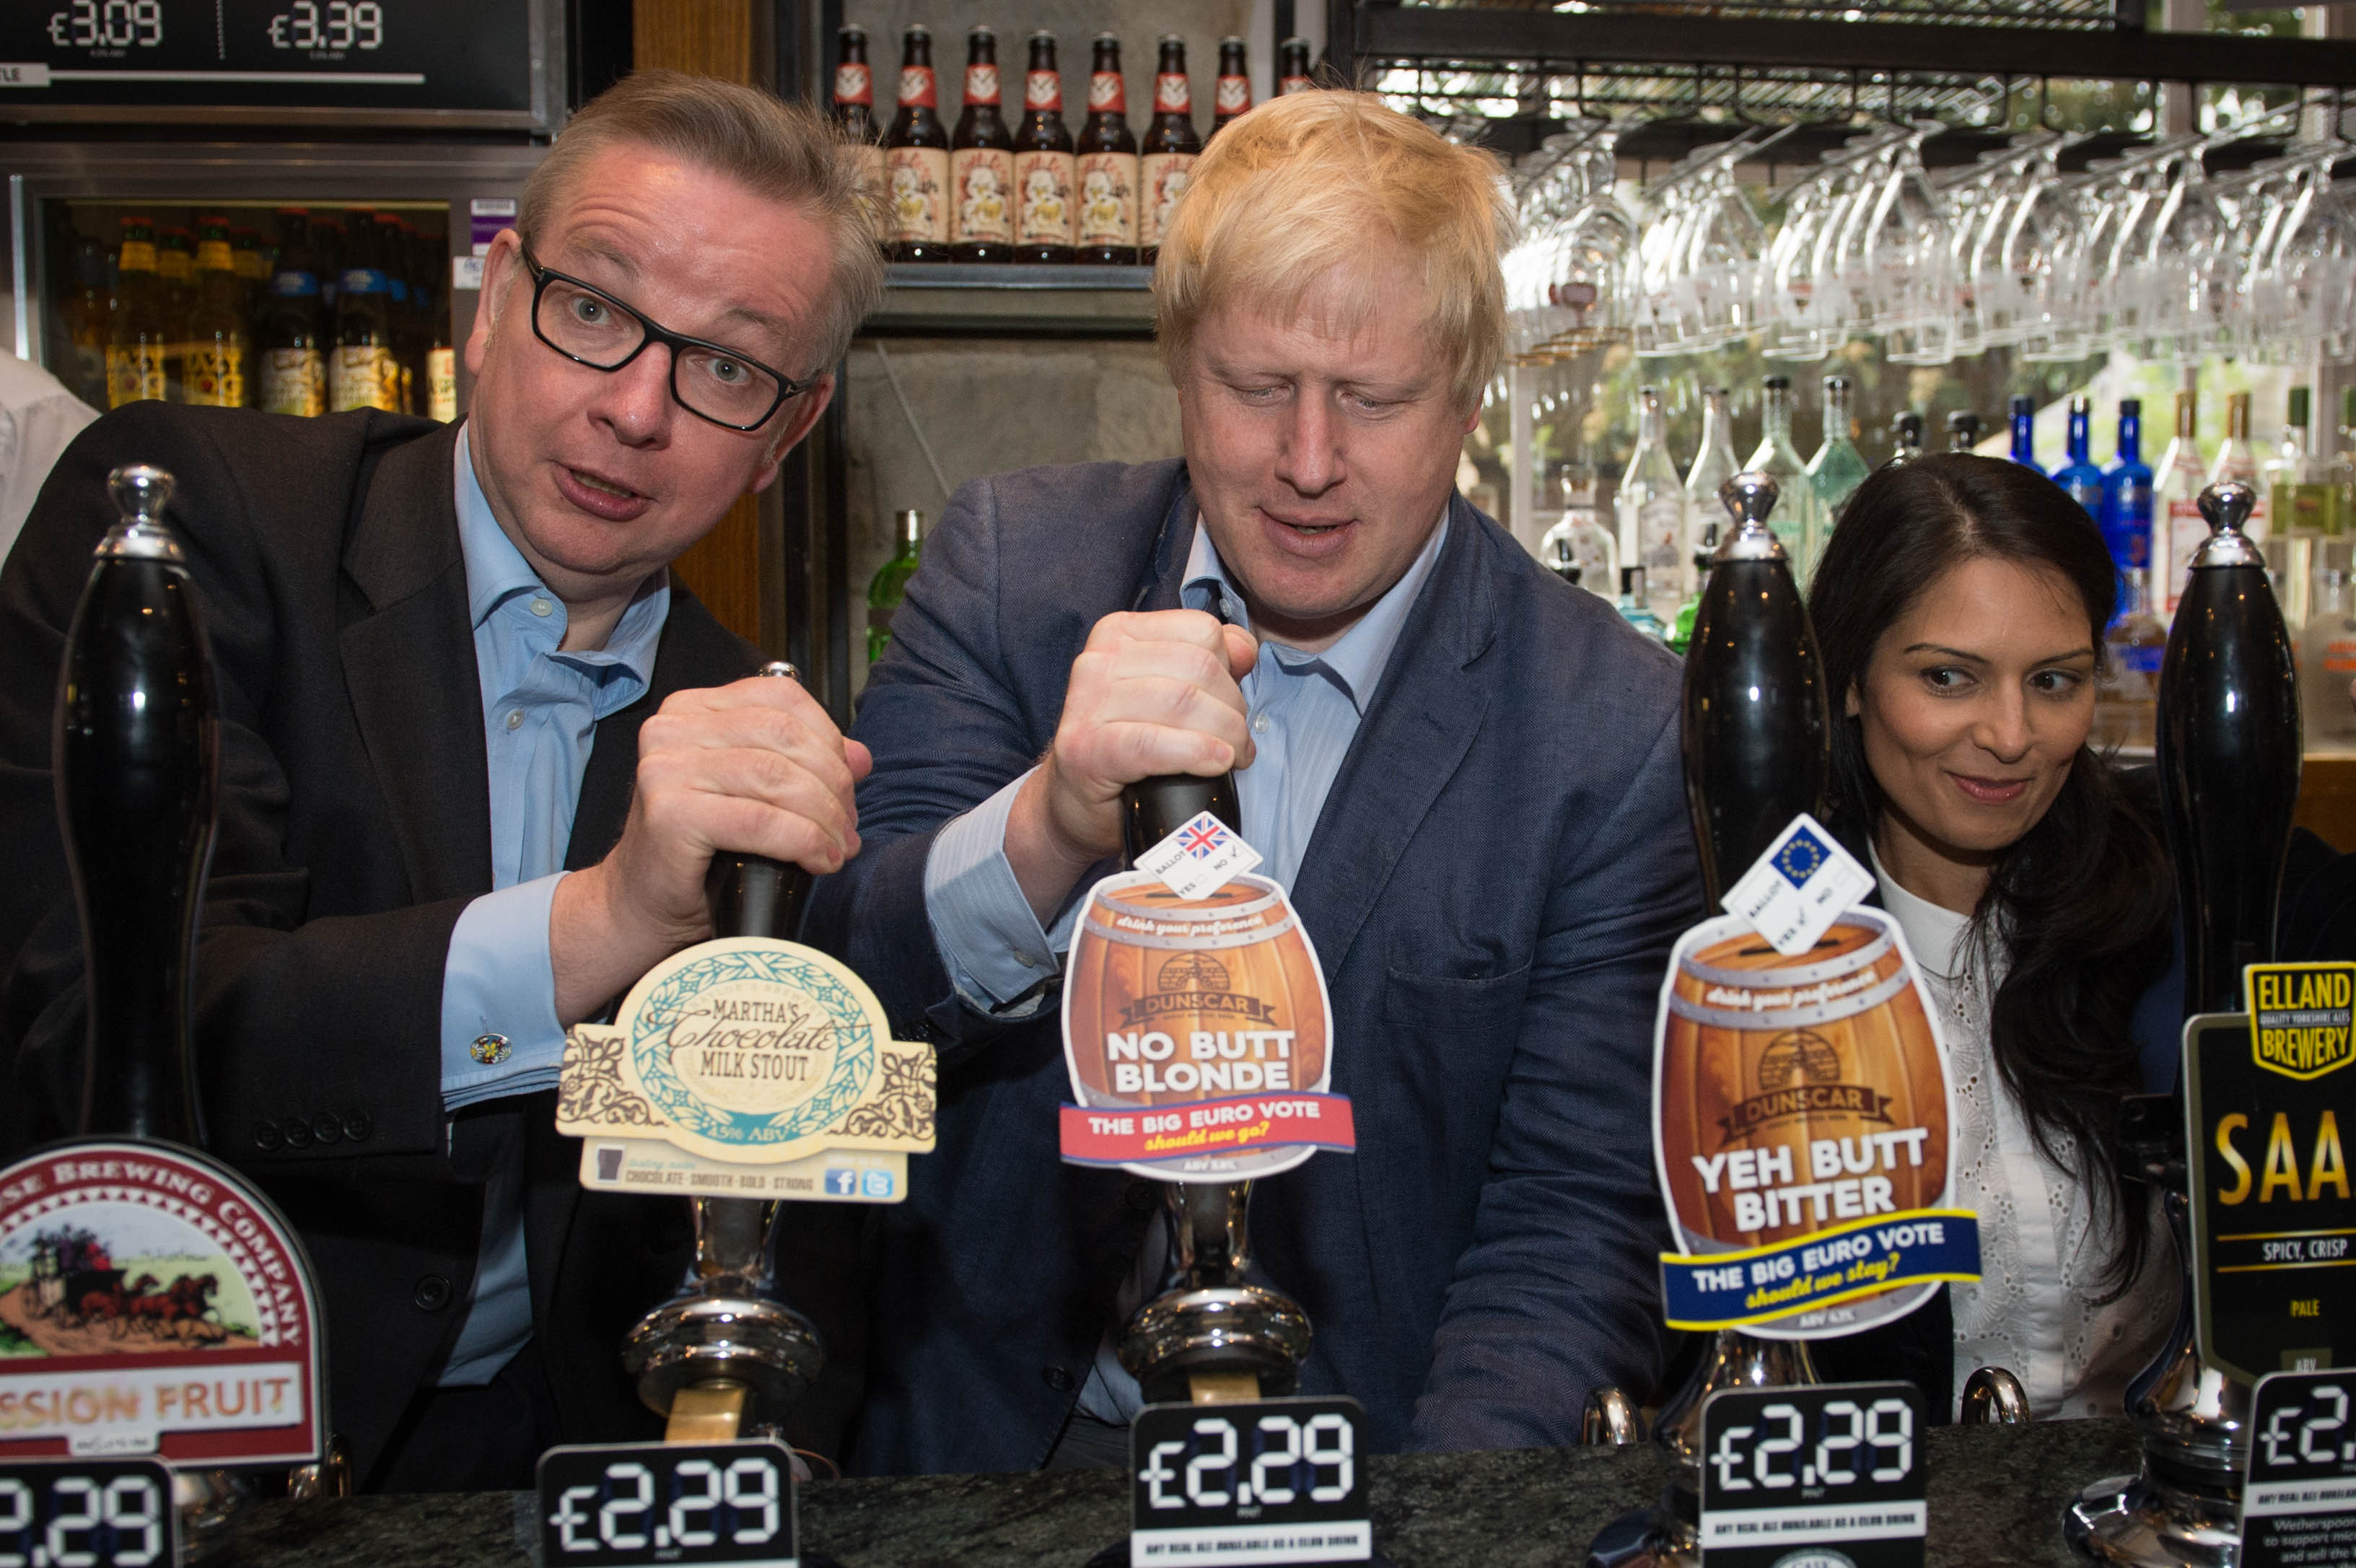 Michael Gove, Boris Johnson (centre) and Priti Patel pull pints of beer